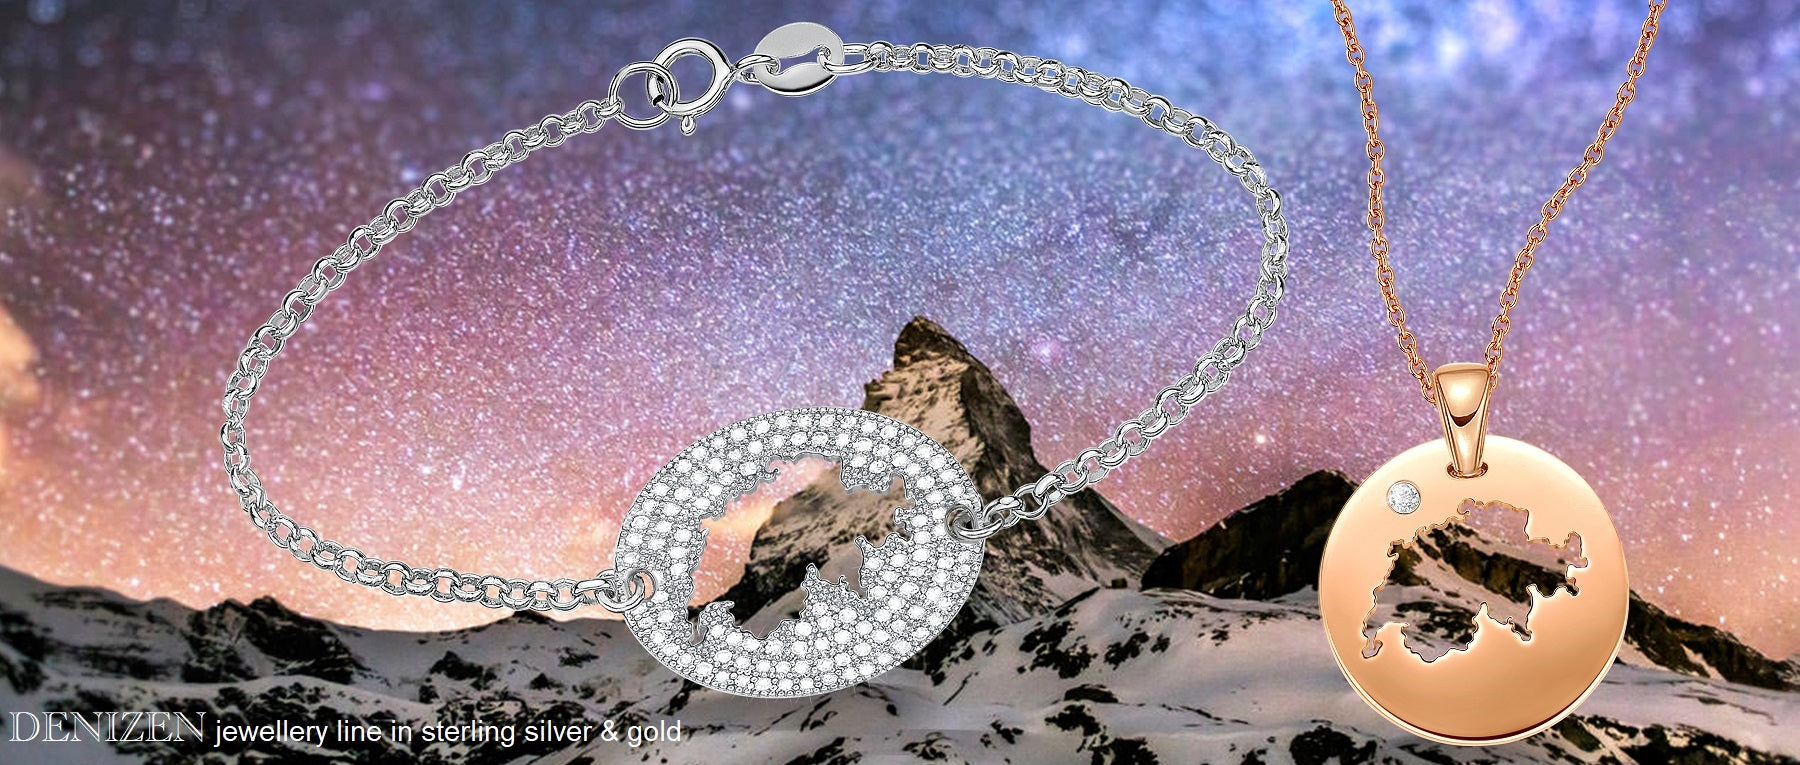 DENIZEN Bracelet of Switzerland a souvenir jewelry for zermatt